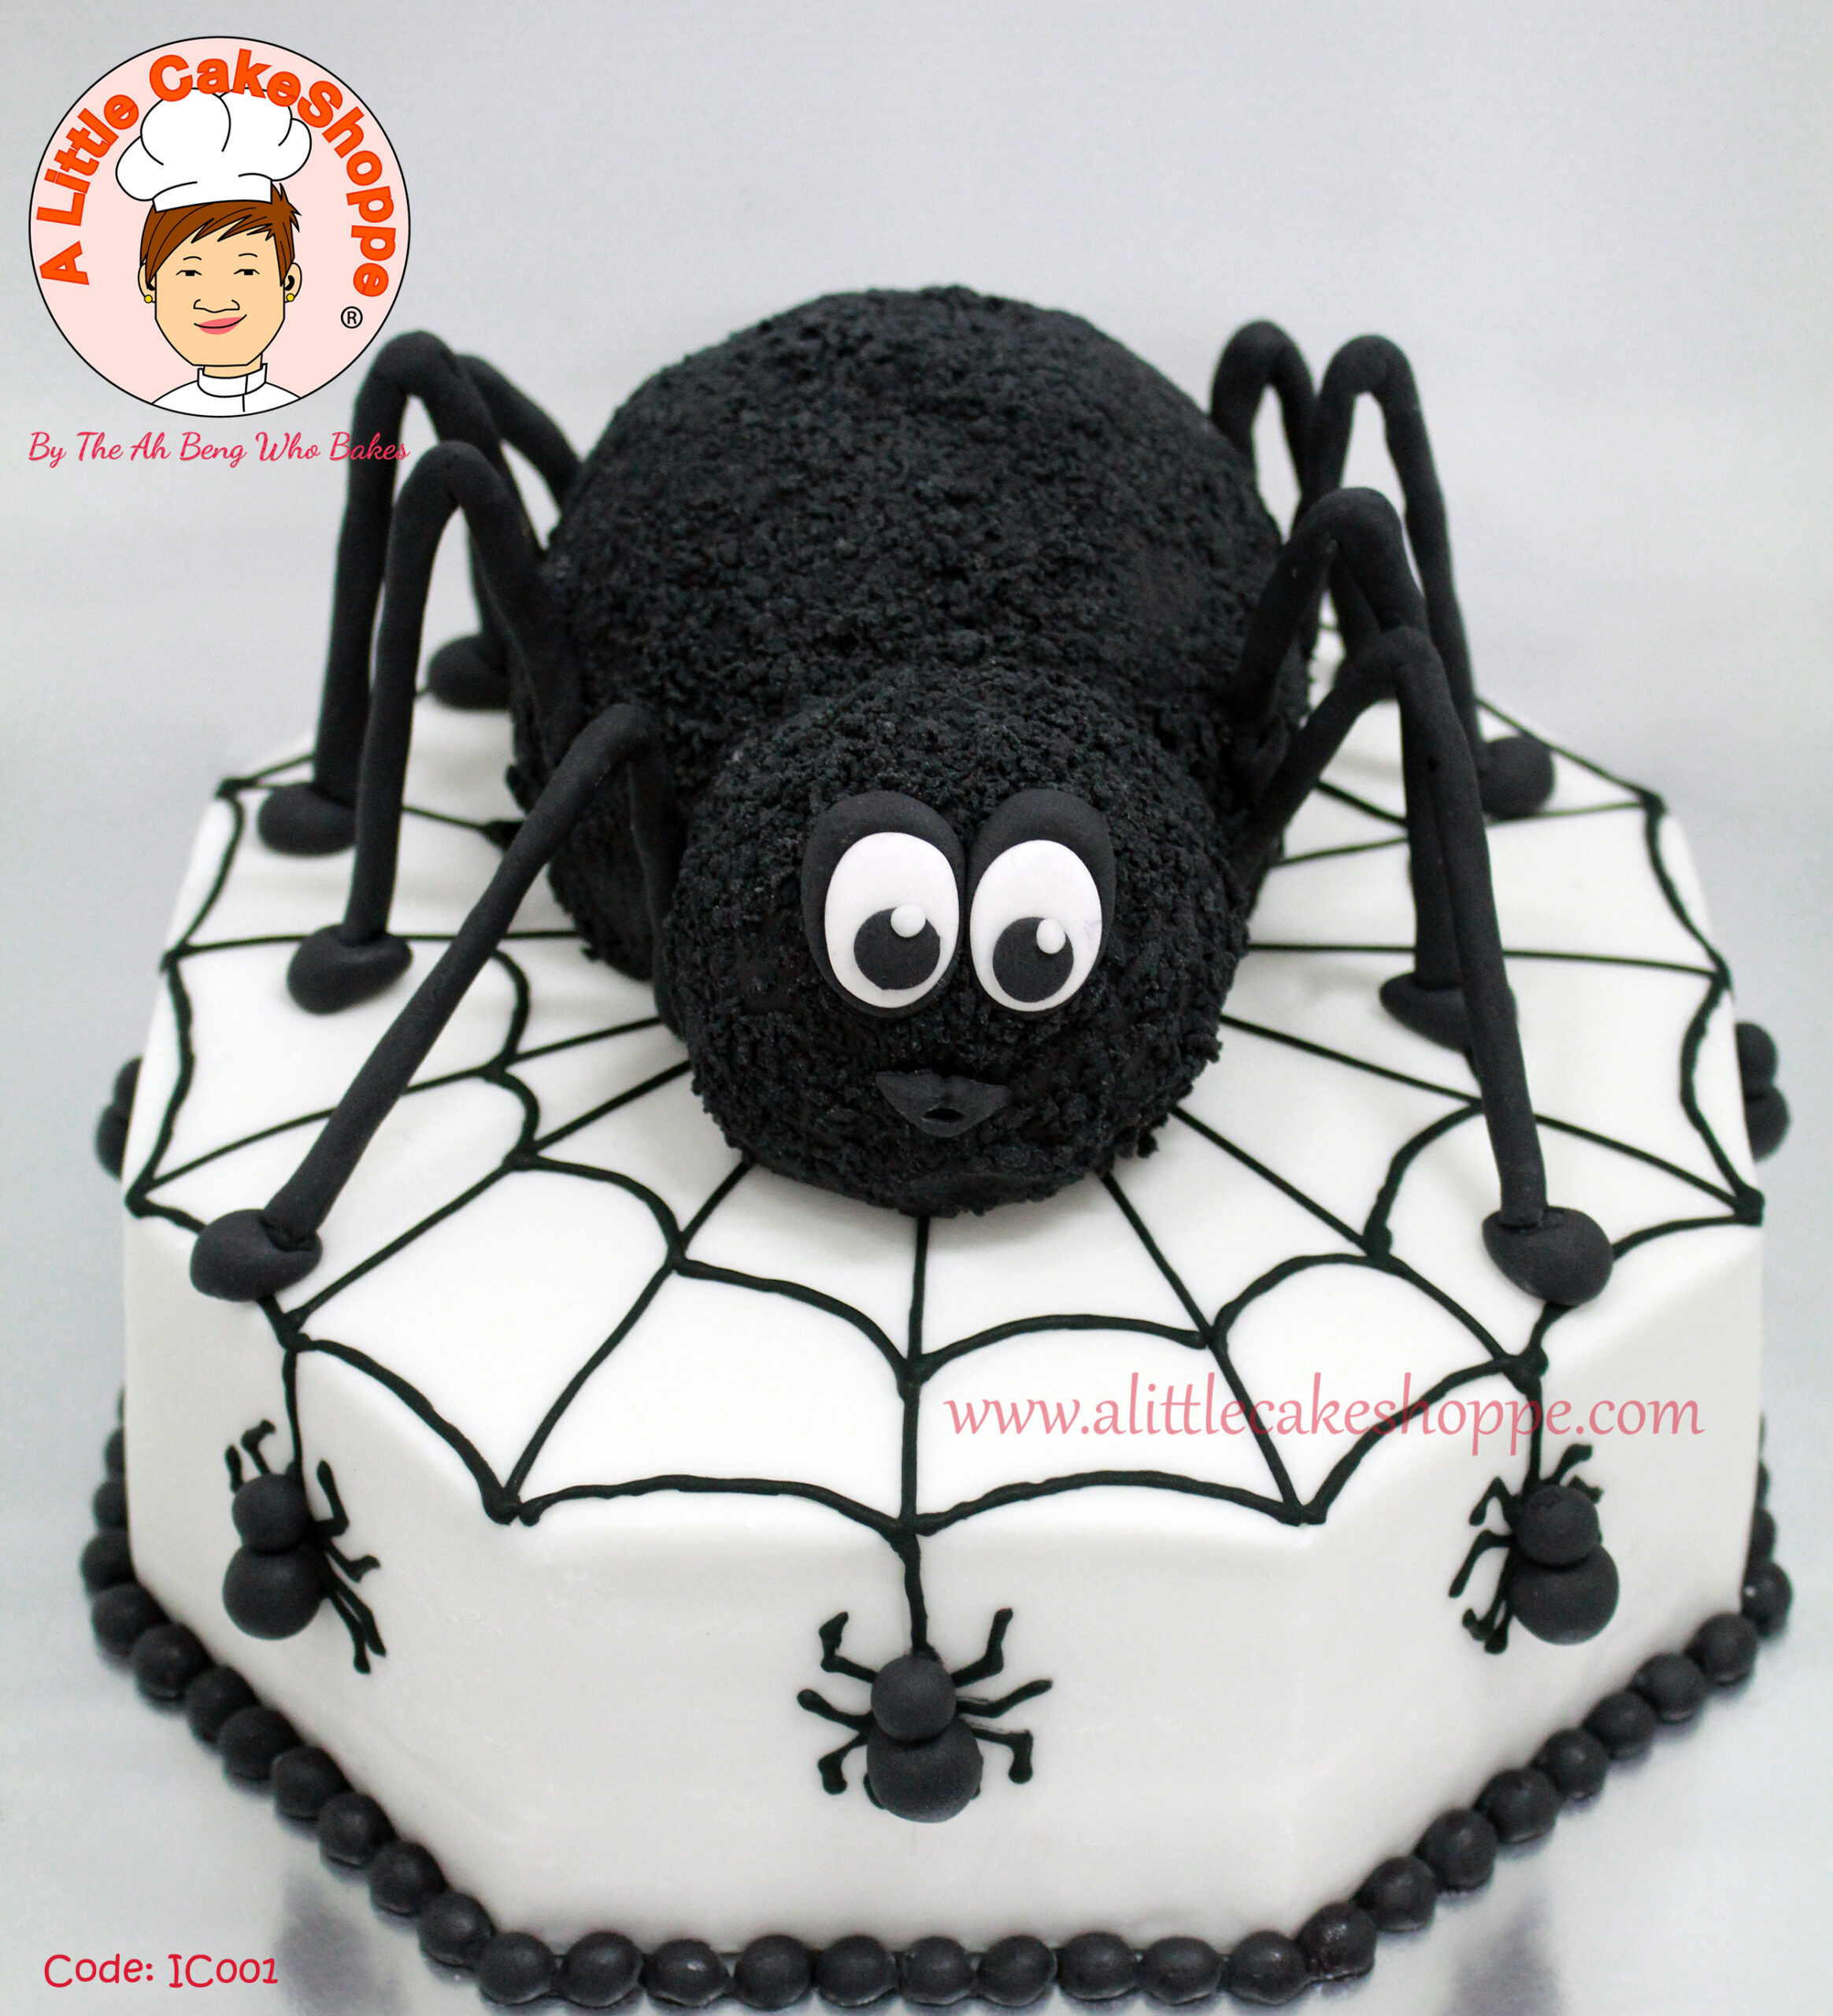 Best Customised Cake Shop Singapore custom cake 2D 3D birthday cake cupcakes desserts wedding corporate events anniversary 1st birthday 21st birthday fondant fresh cream buttercream cakes alittlecakeshoppe a little cake shoppe compliments review singapore bakers SG cake shop cakeshop ah beng who bakes spider insect